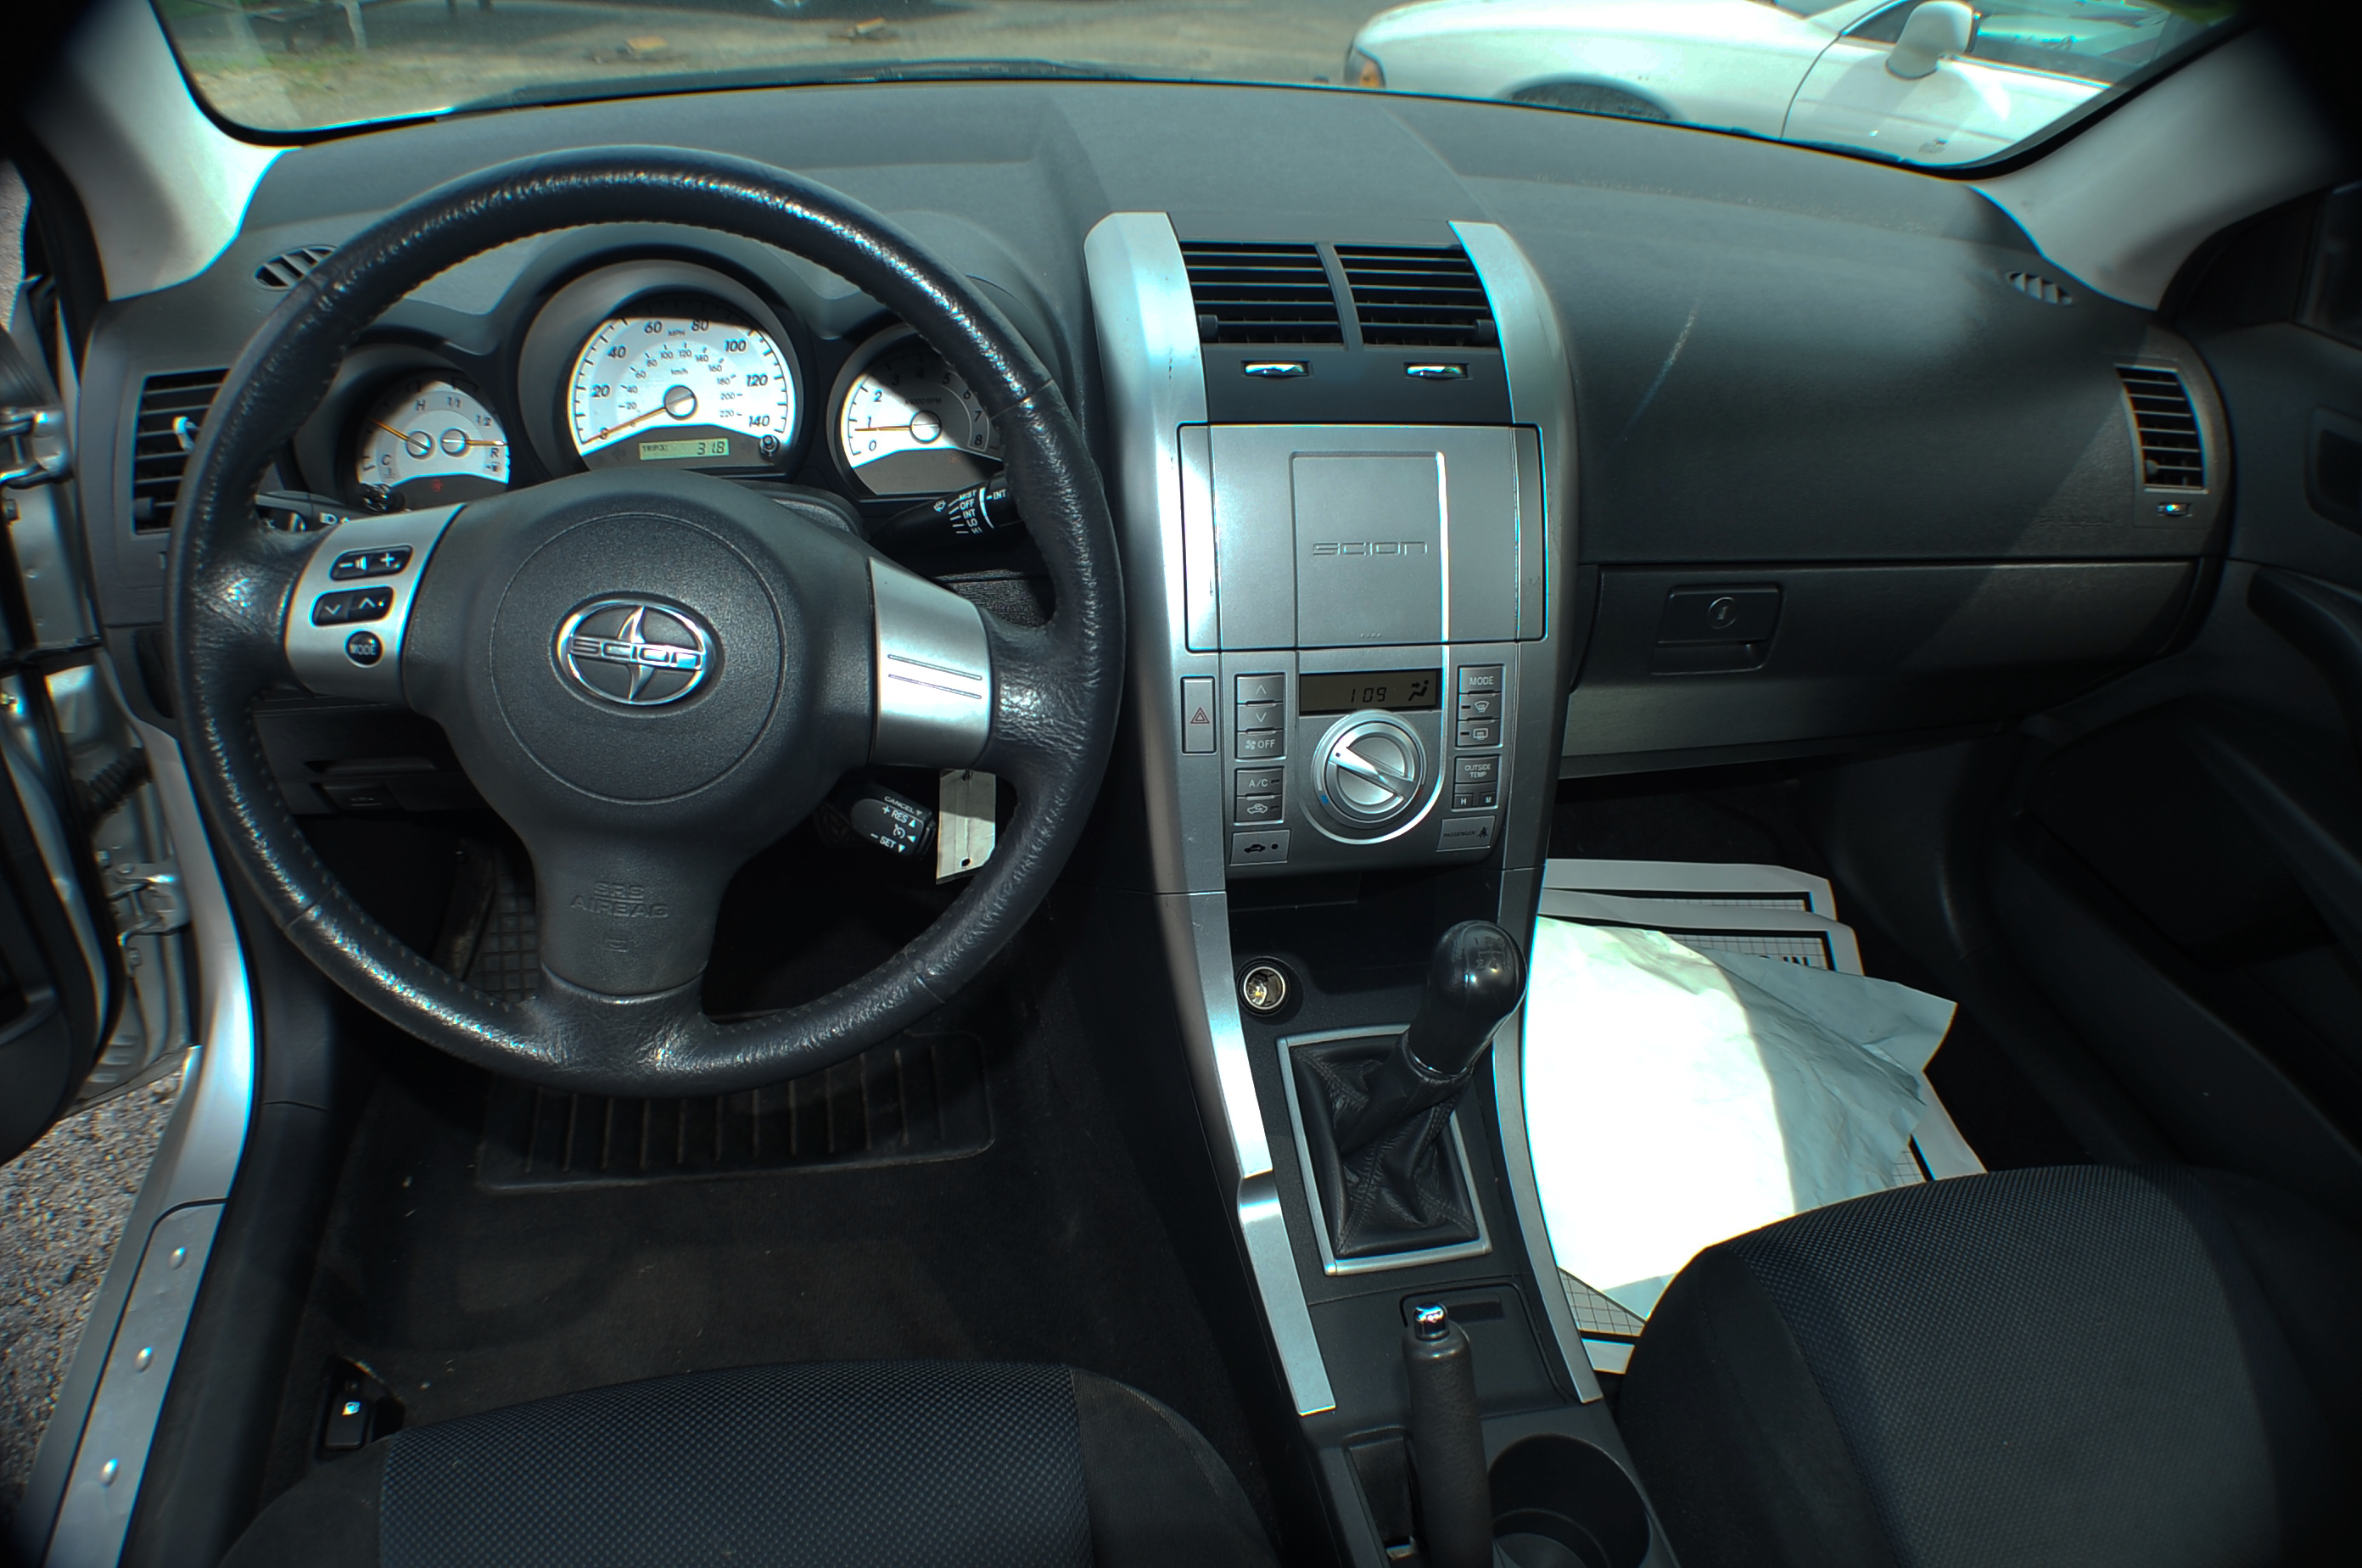 2006 Scion TC Manual Shift Coupe Used Car Sale Kenosha